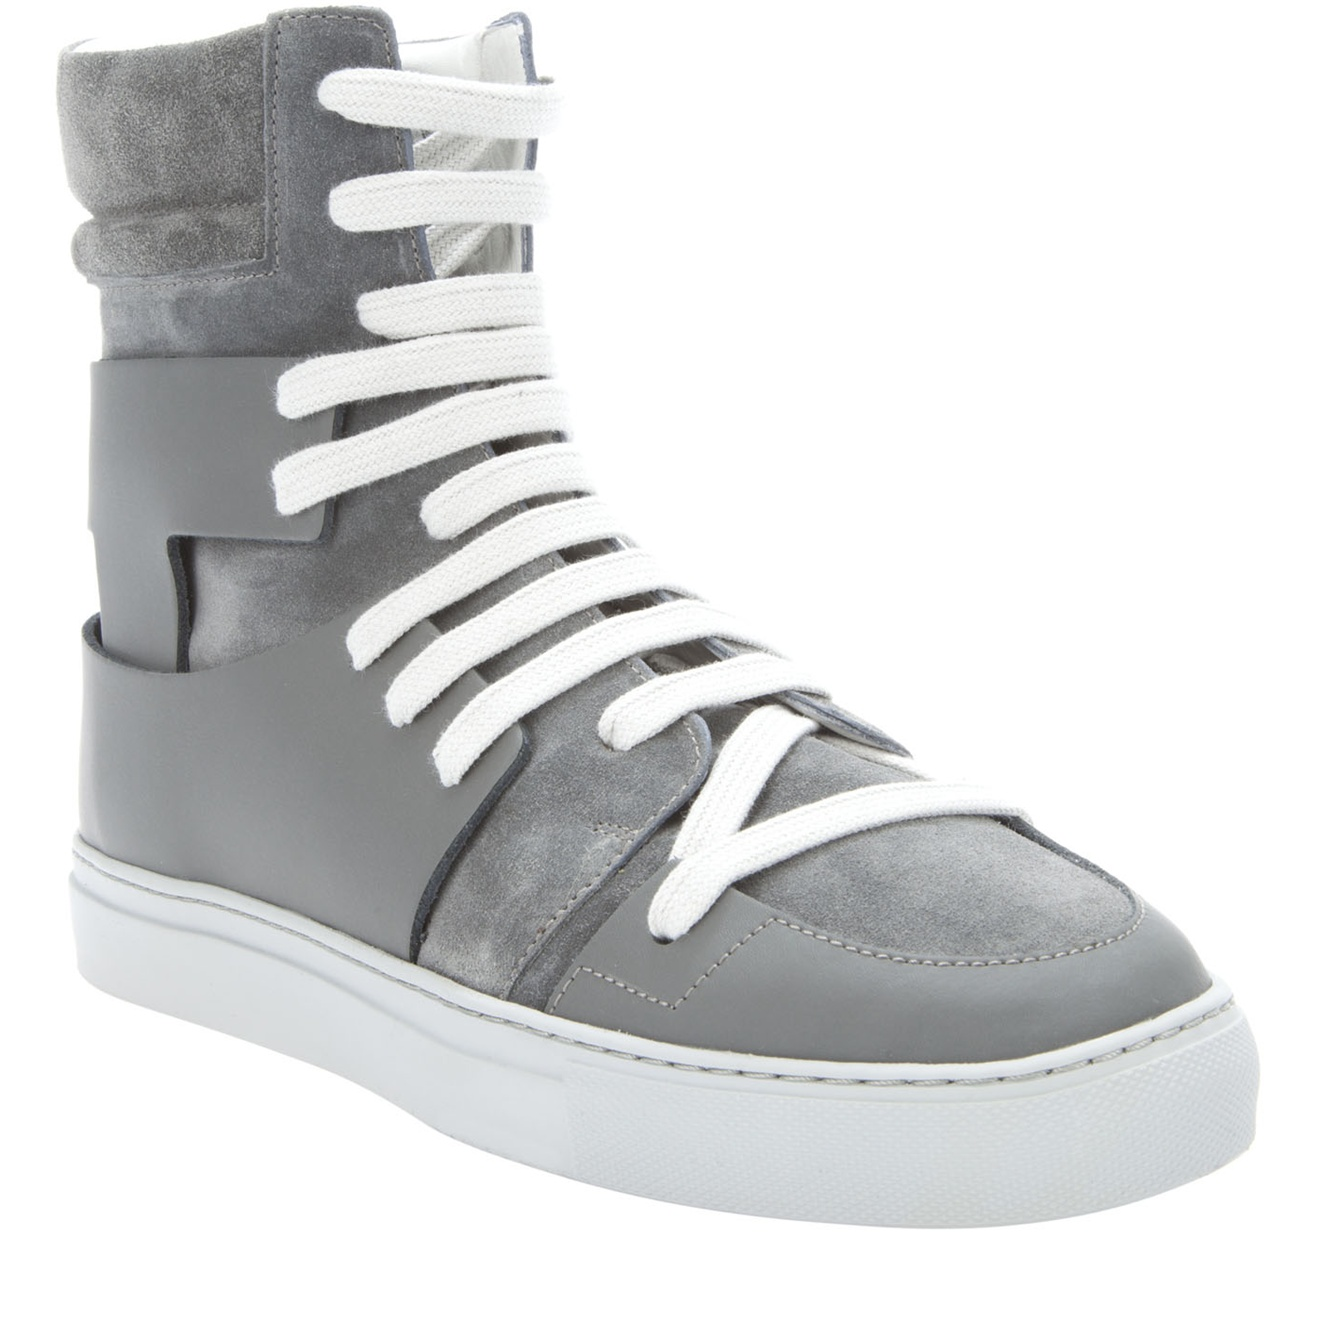 a0a6002dafb8ff Kris Van Assche Uneven Lace High-top Trainer in Gray for Men - Lyst